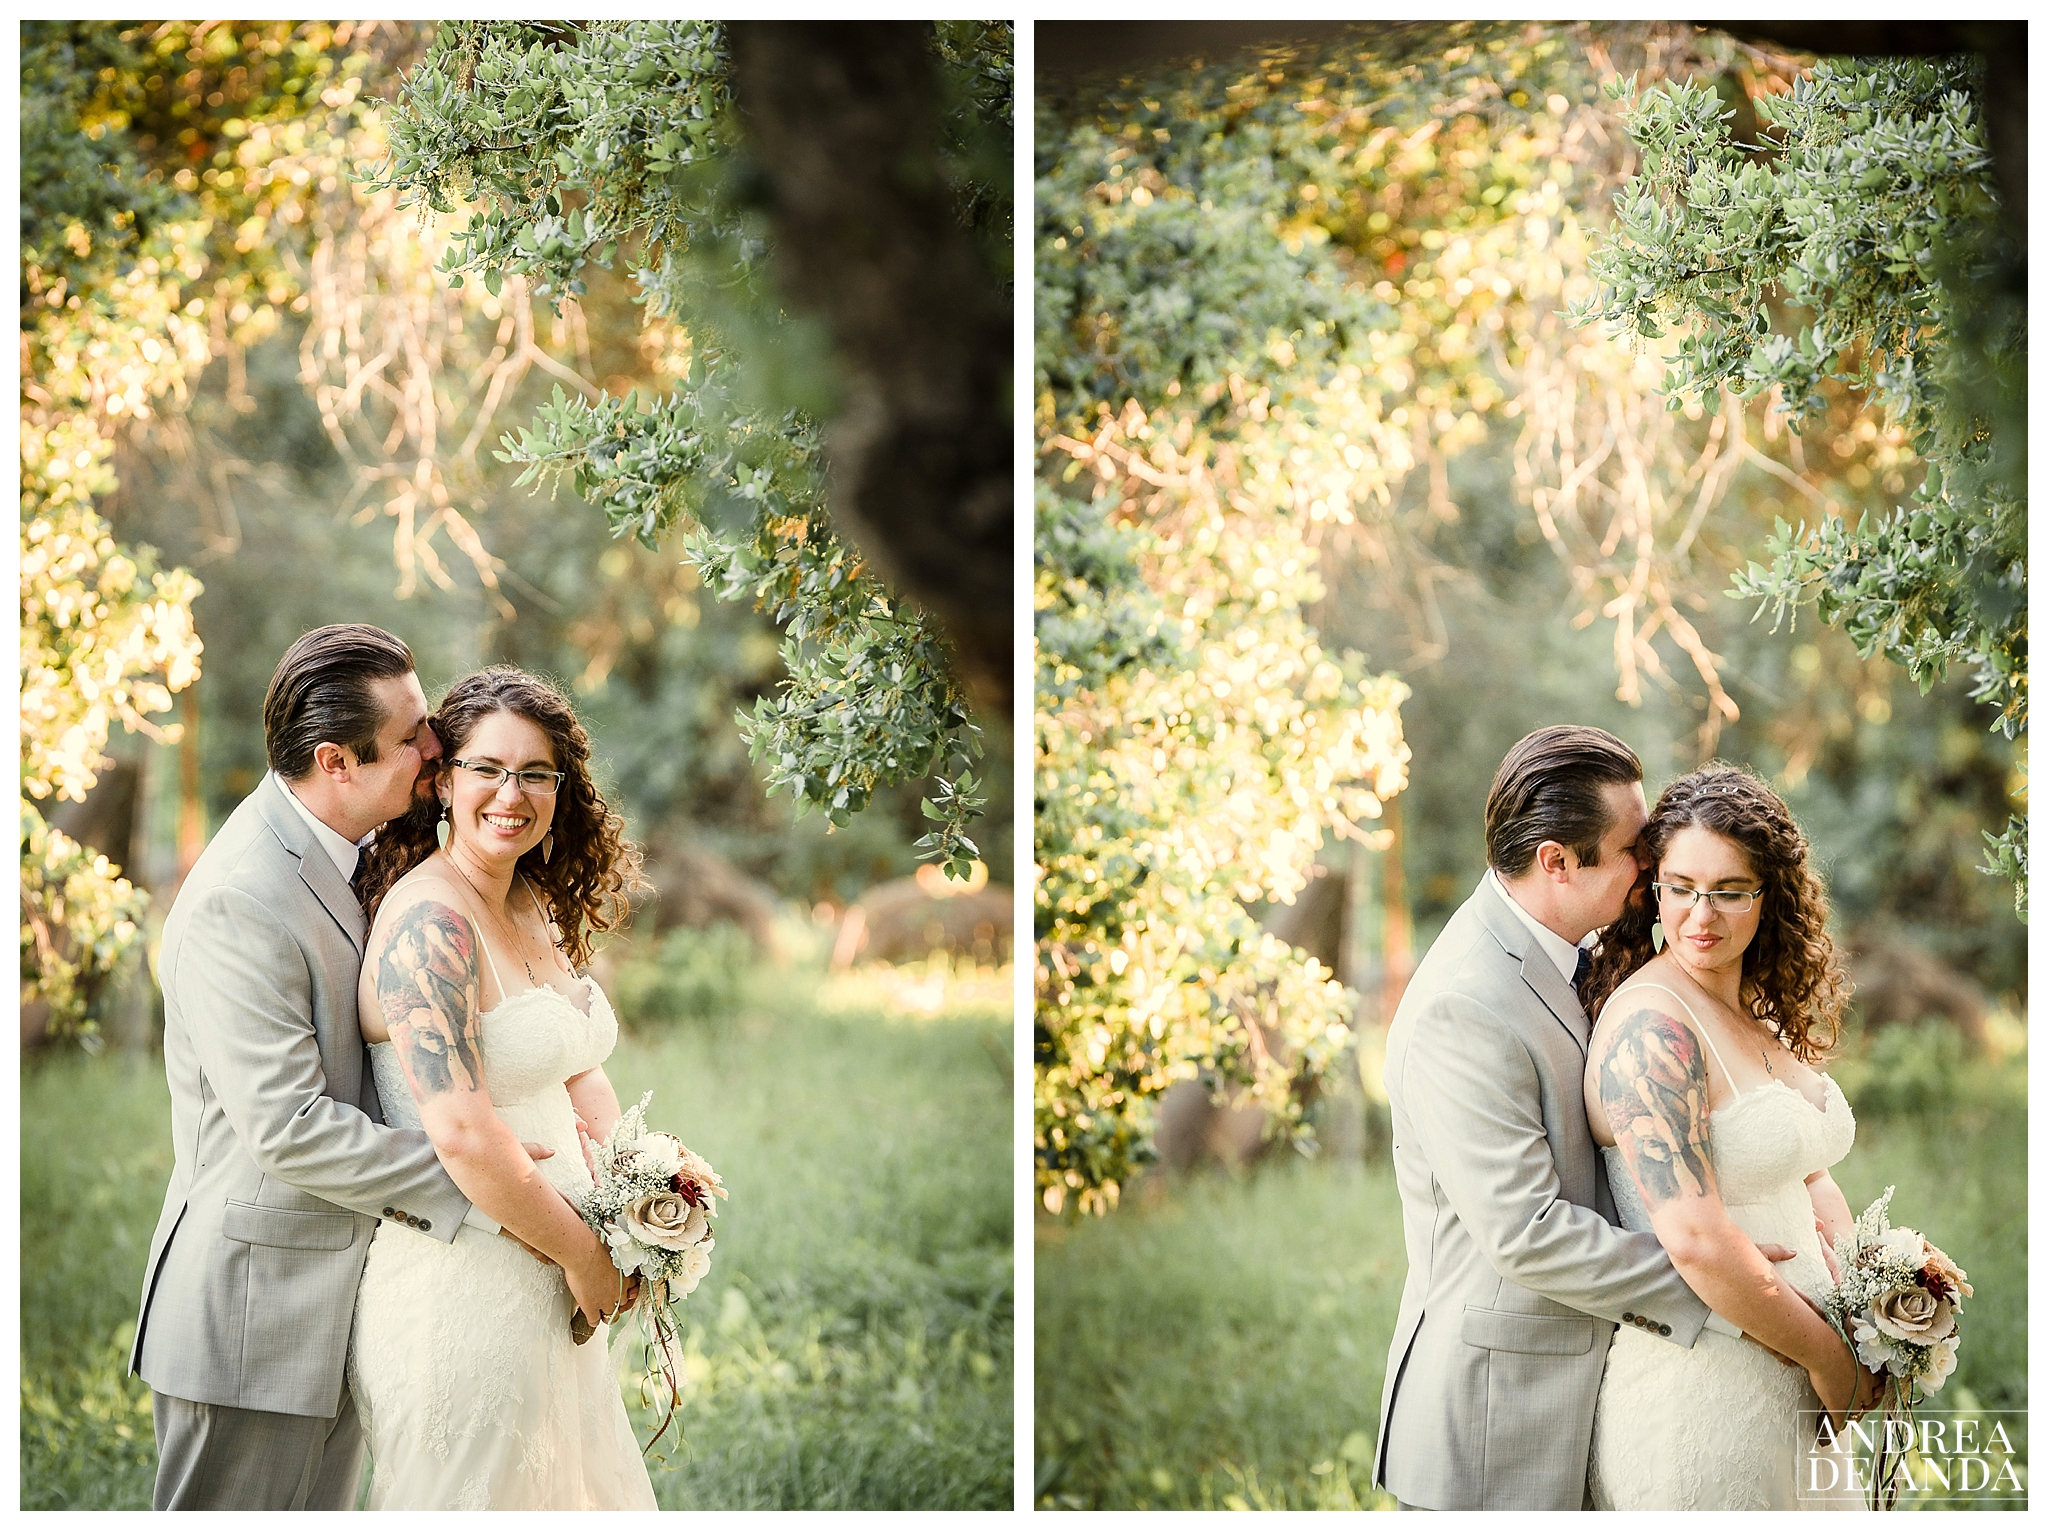 Santa Barbara Wedding_ Andrea de Anda Photography__0025.jpg